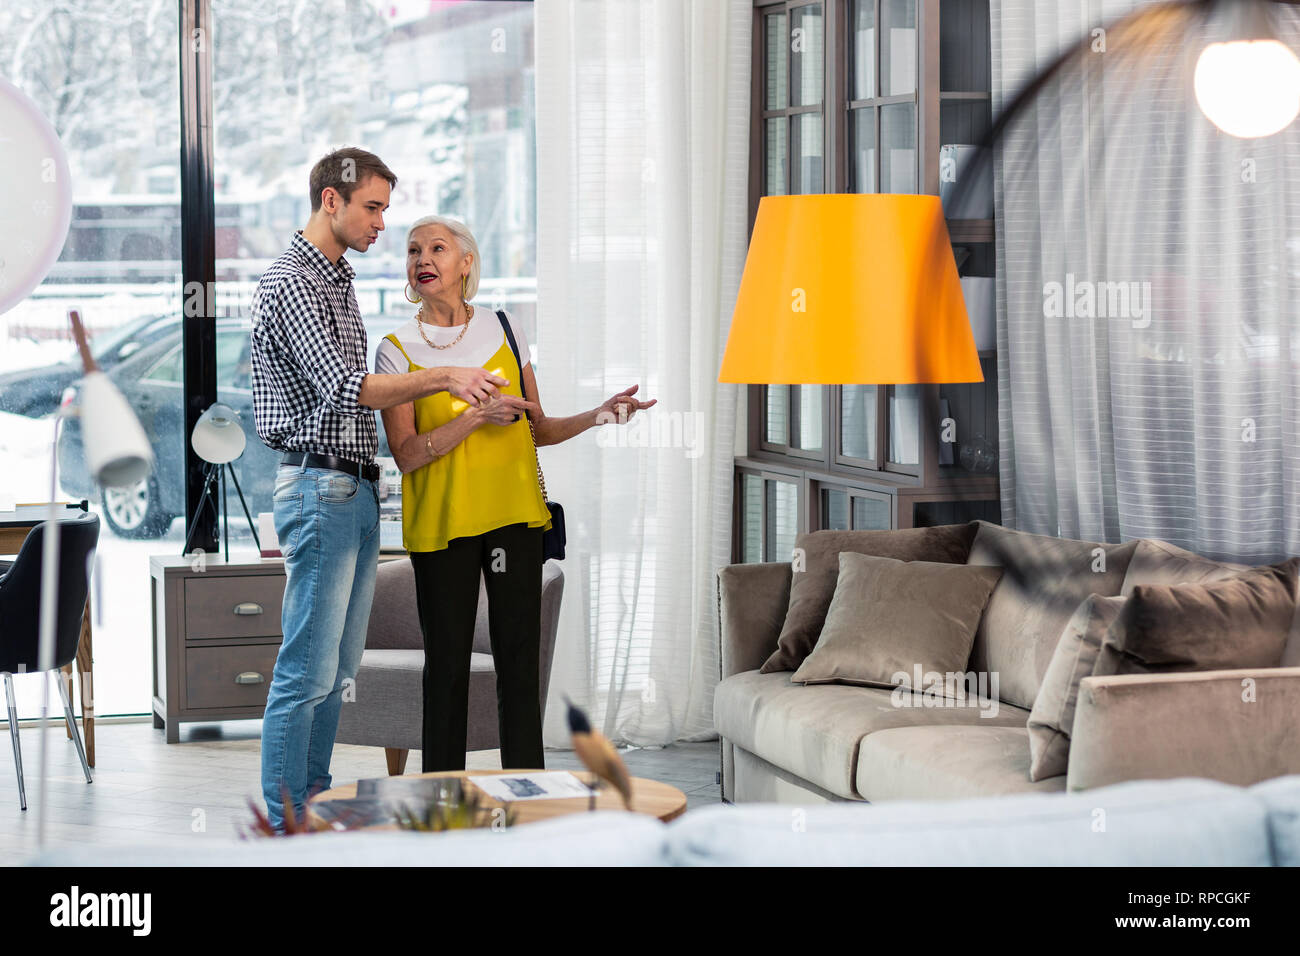 Handsome adult son discussing sofa purchasing with stylish elderly mom Stock Photo